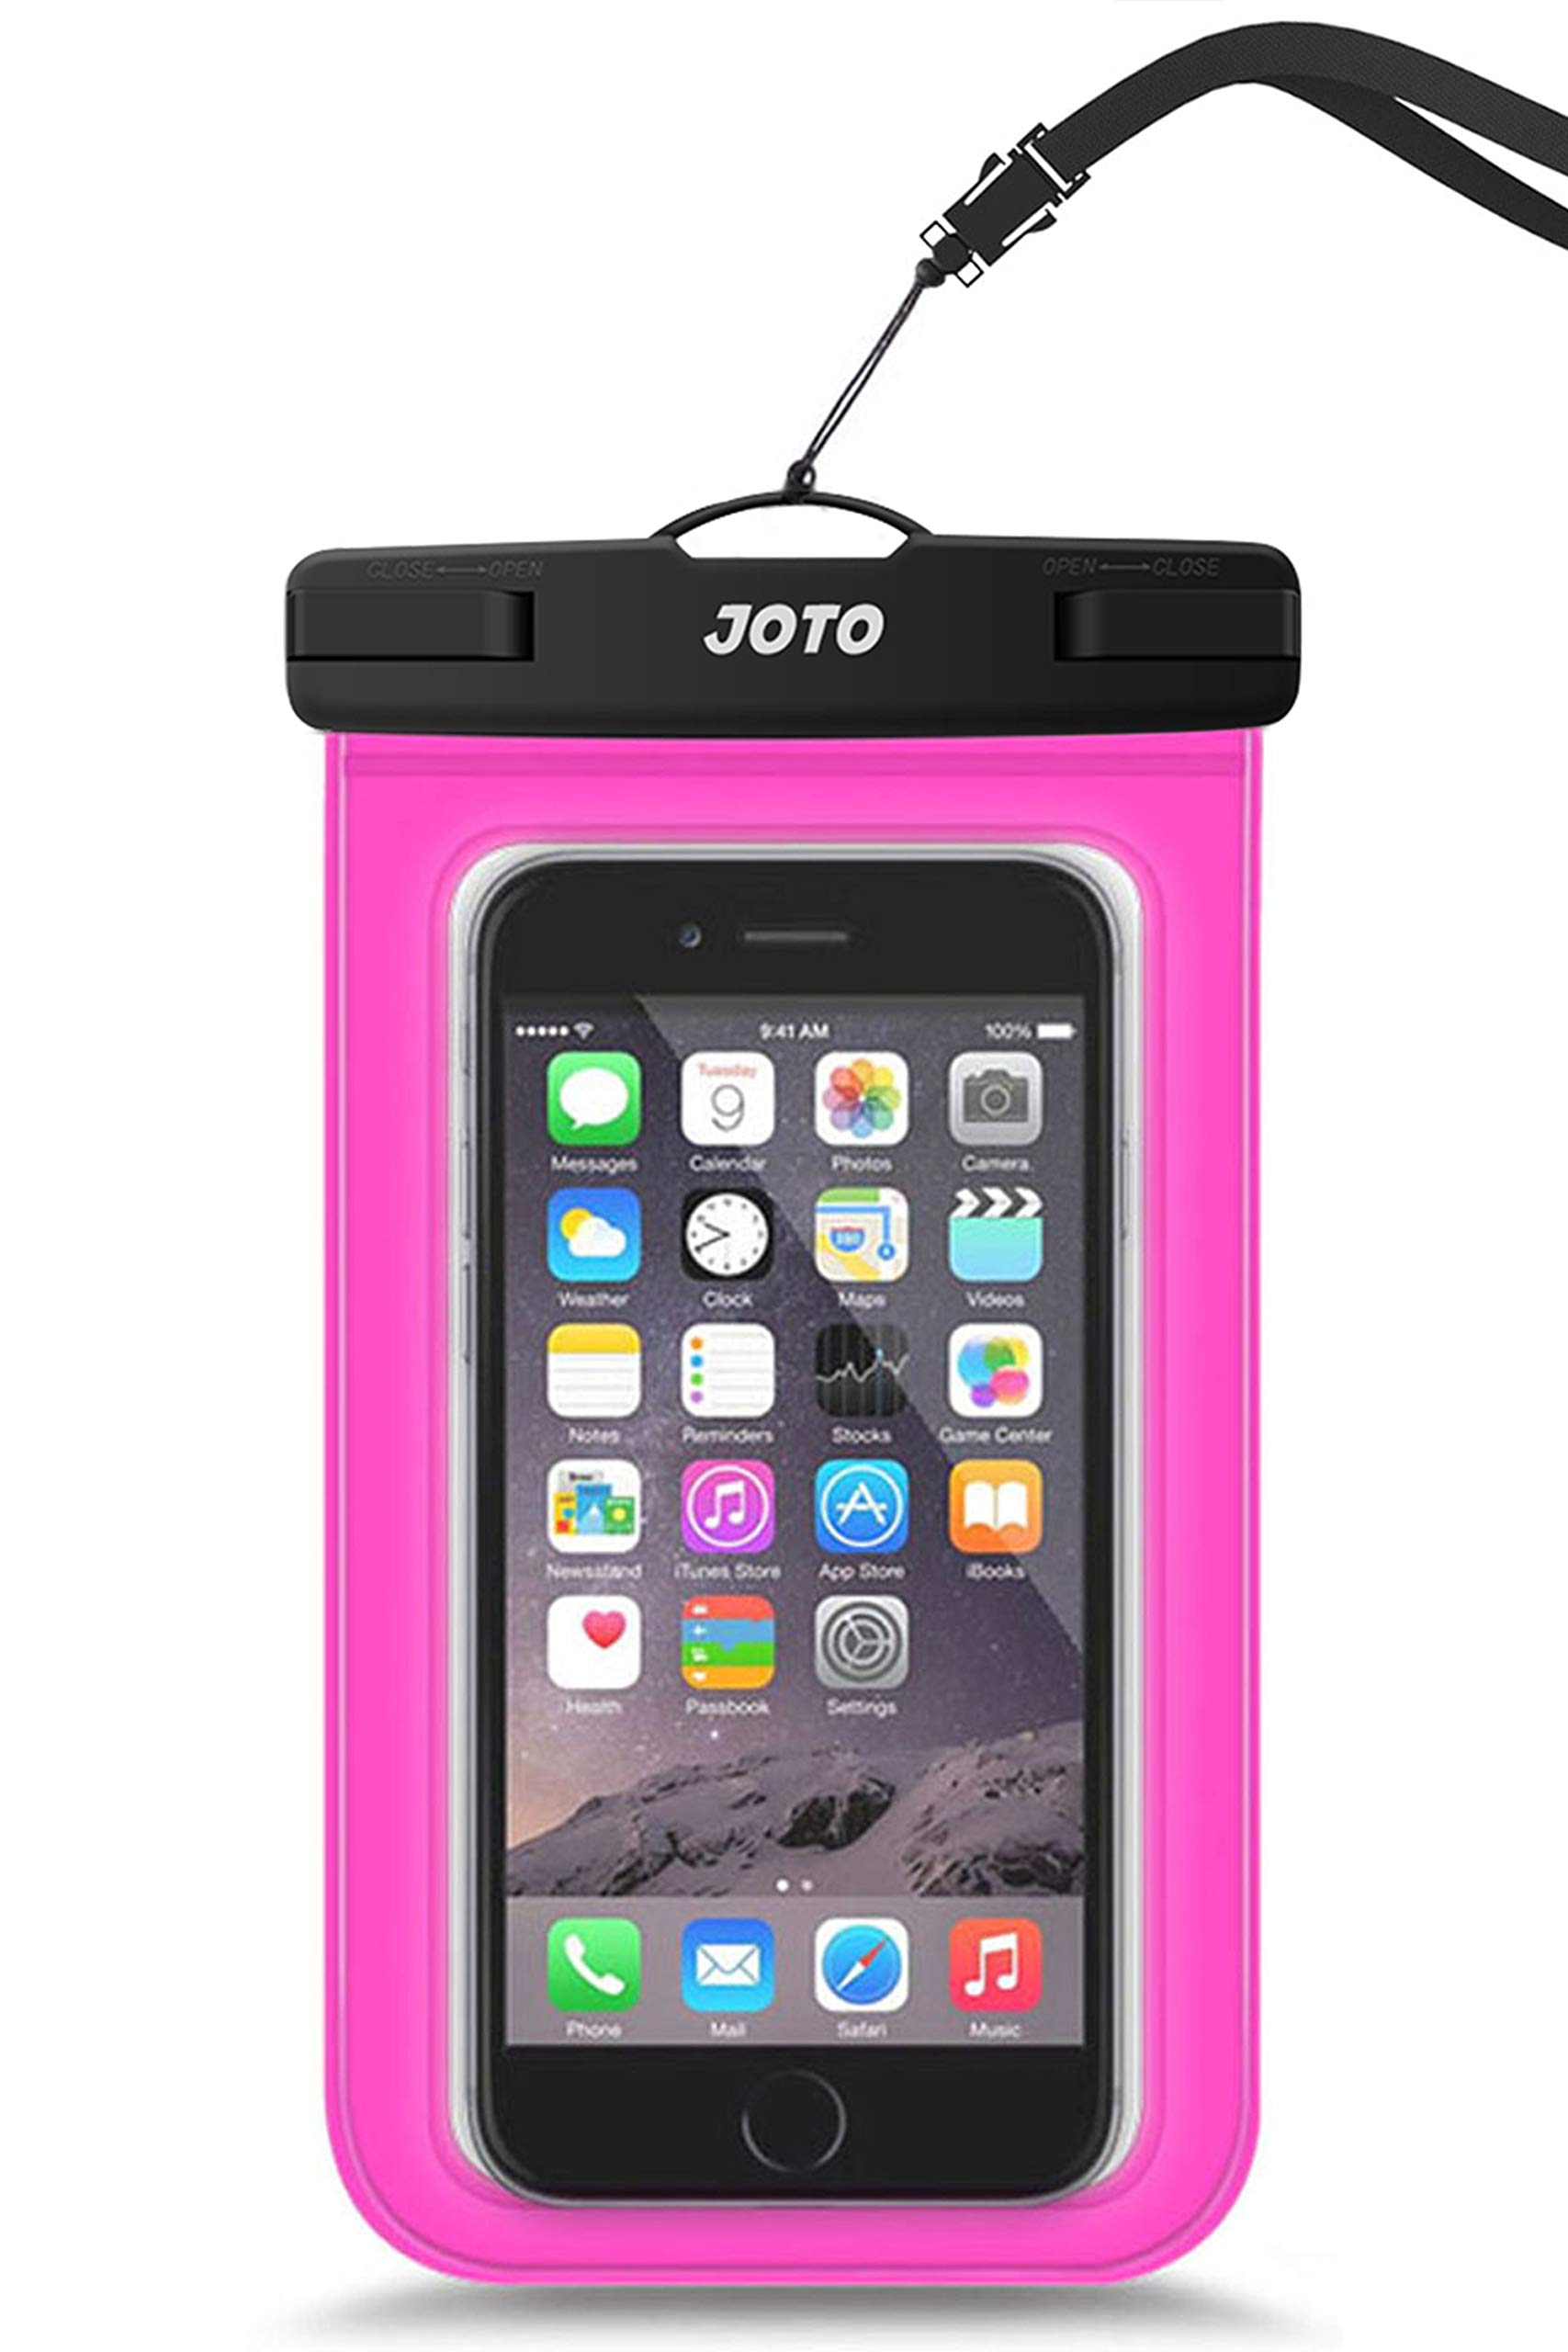 """JOTO Universal Waterproof Pouch Cellphone Dry Bag Case for iPhone 11 Pro Max Xs Max XR X 8 7 6S Plus SE 2020, Galaxy S20 Ultra S20+ S10 Plus S10e S9 Plus S8/Note 10+ 9, Pixel 4 XL up to 6.9"""" -Magenta"""